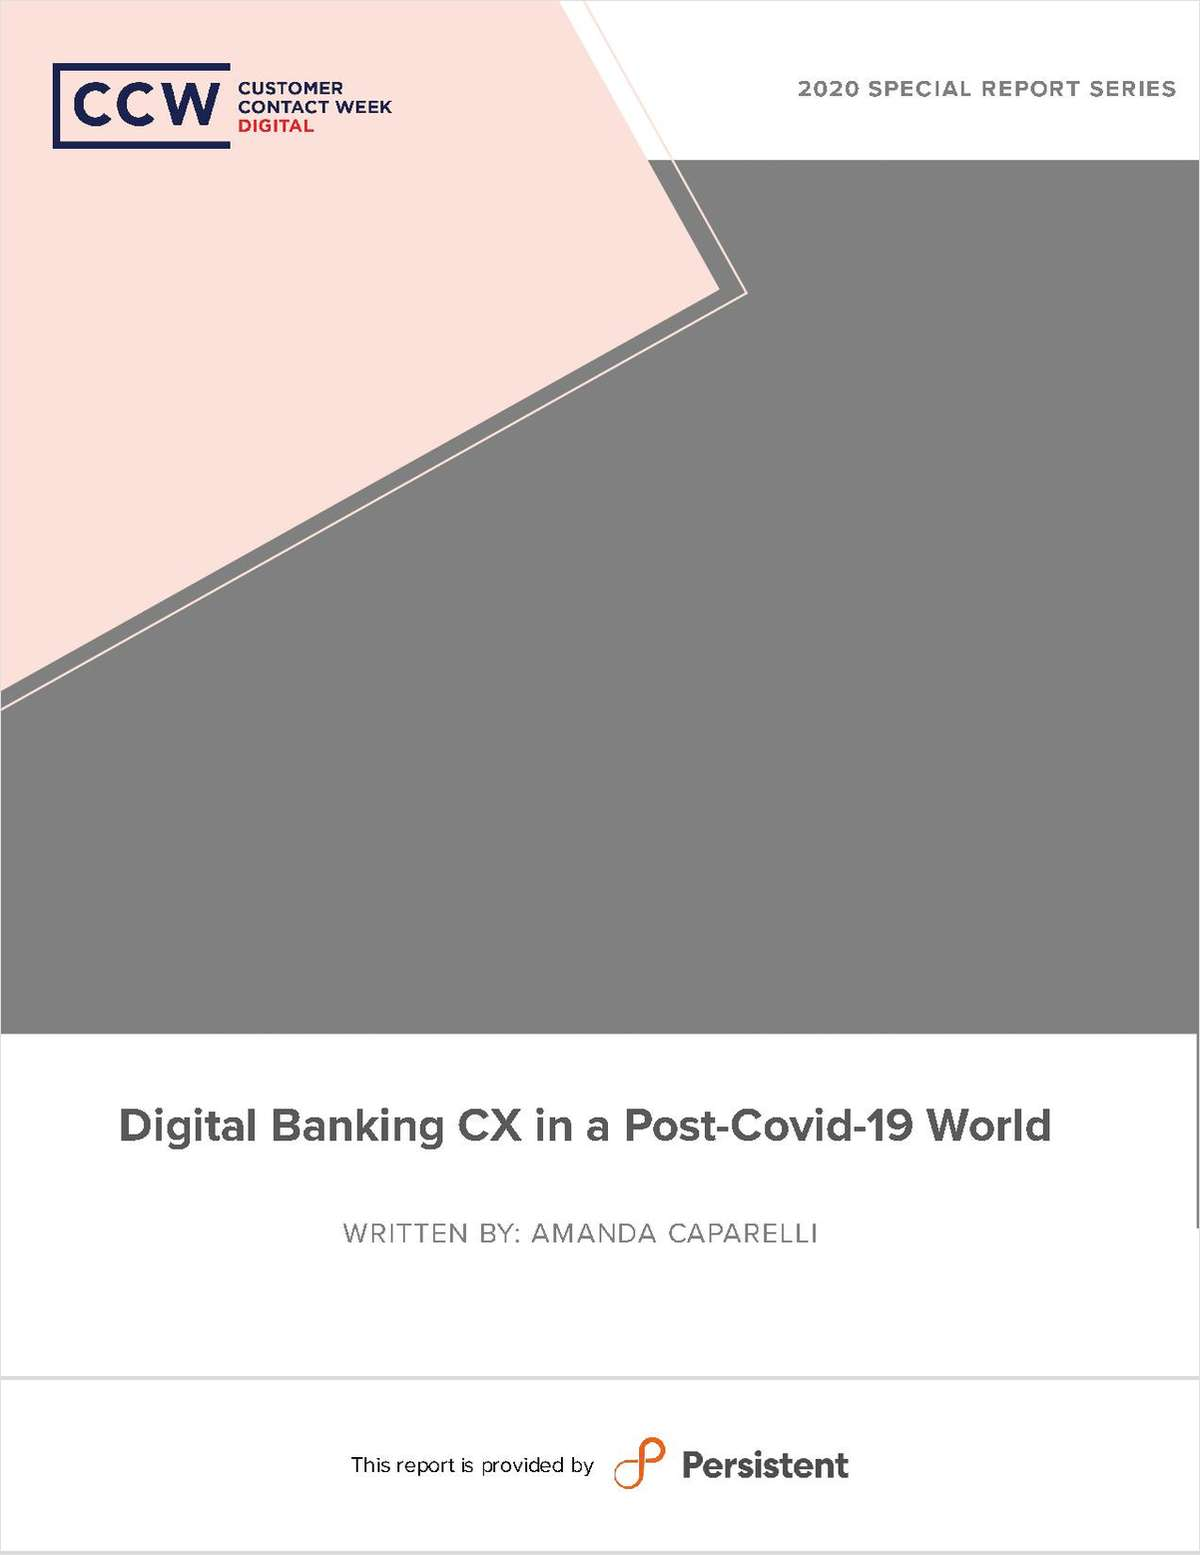 Digital Banking CX In A Post-Covid-19 World